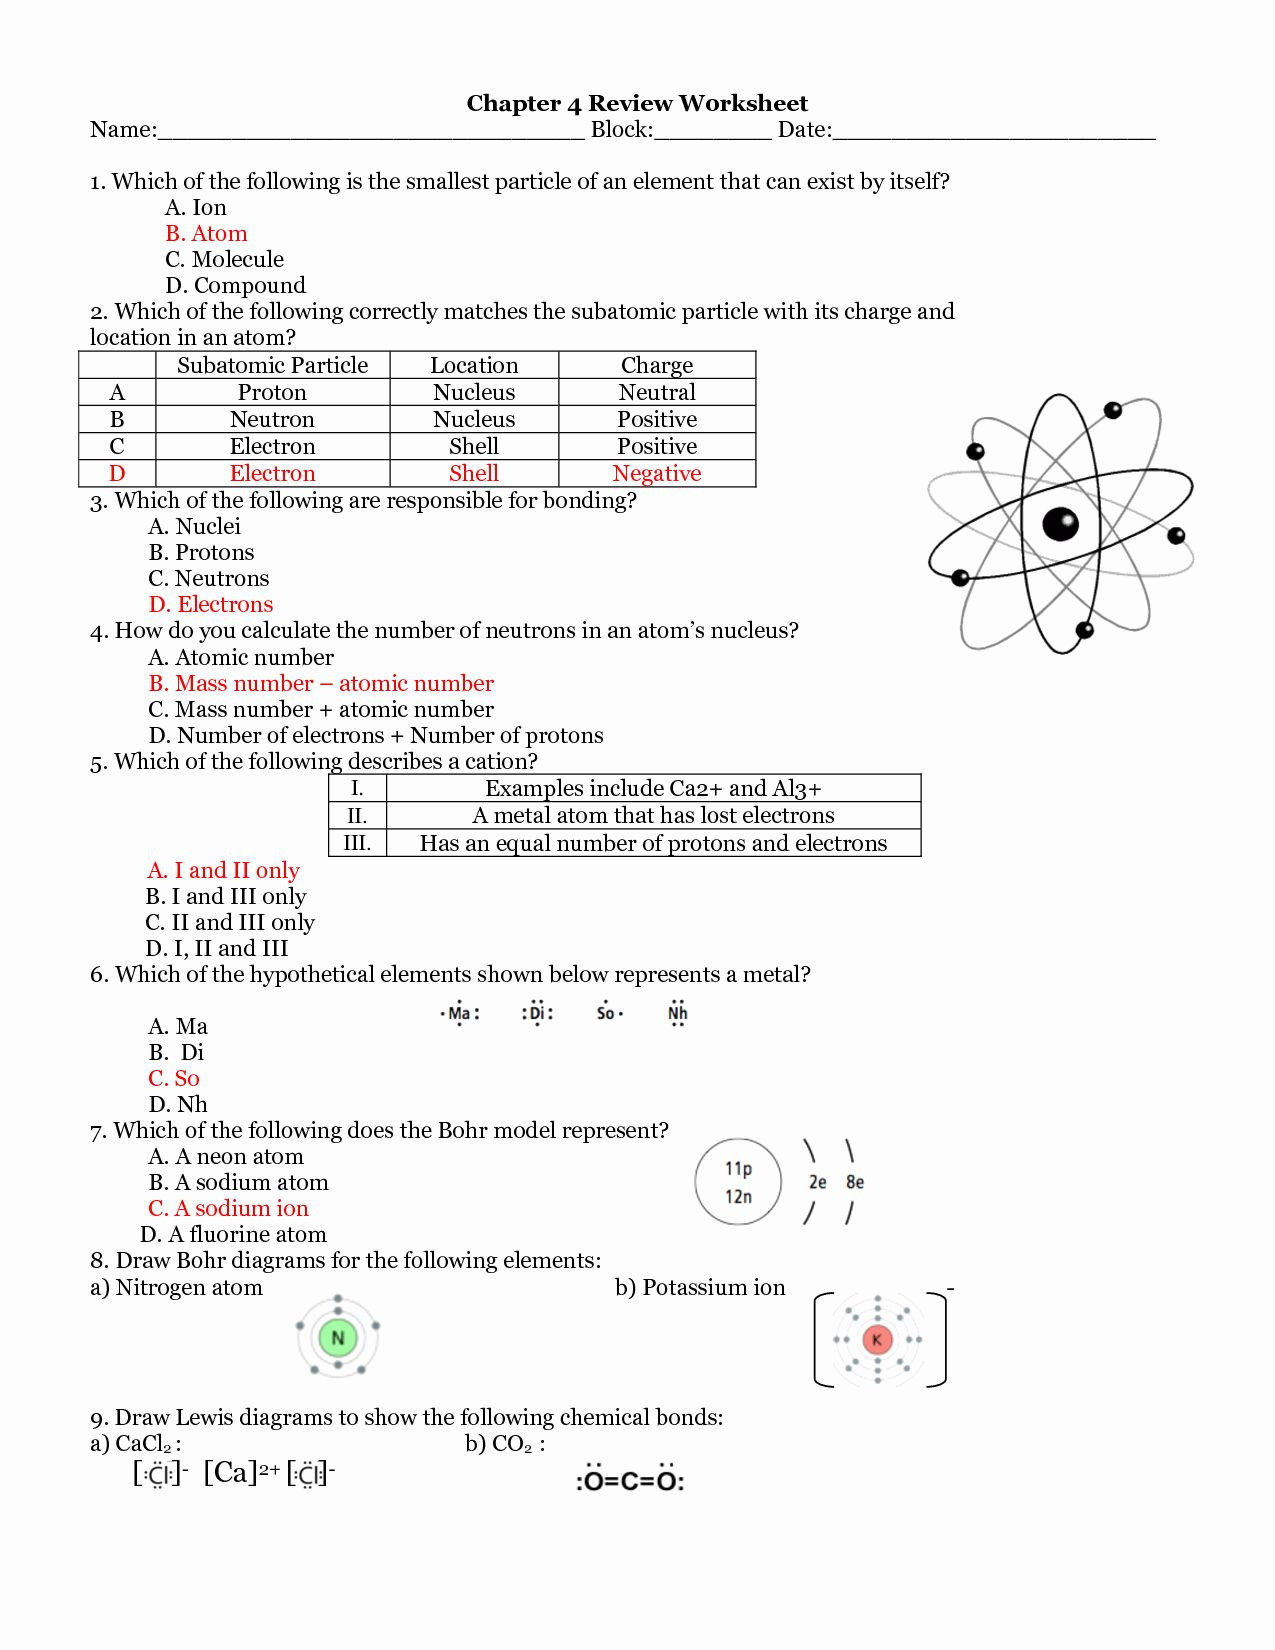 Atoms and Ions Worksheet atoms and Ions Worksheet Answers Luxury atomic Structure